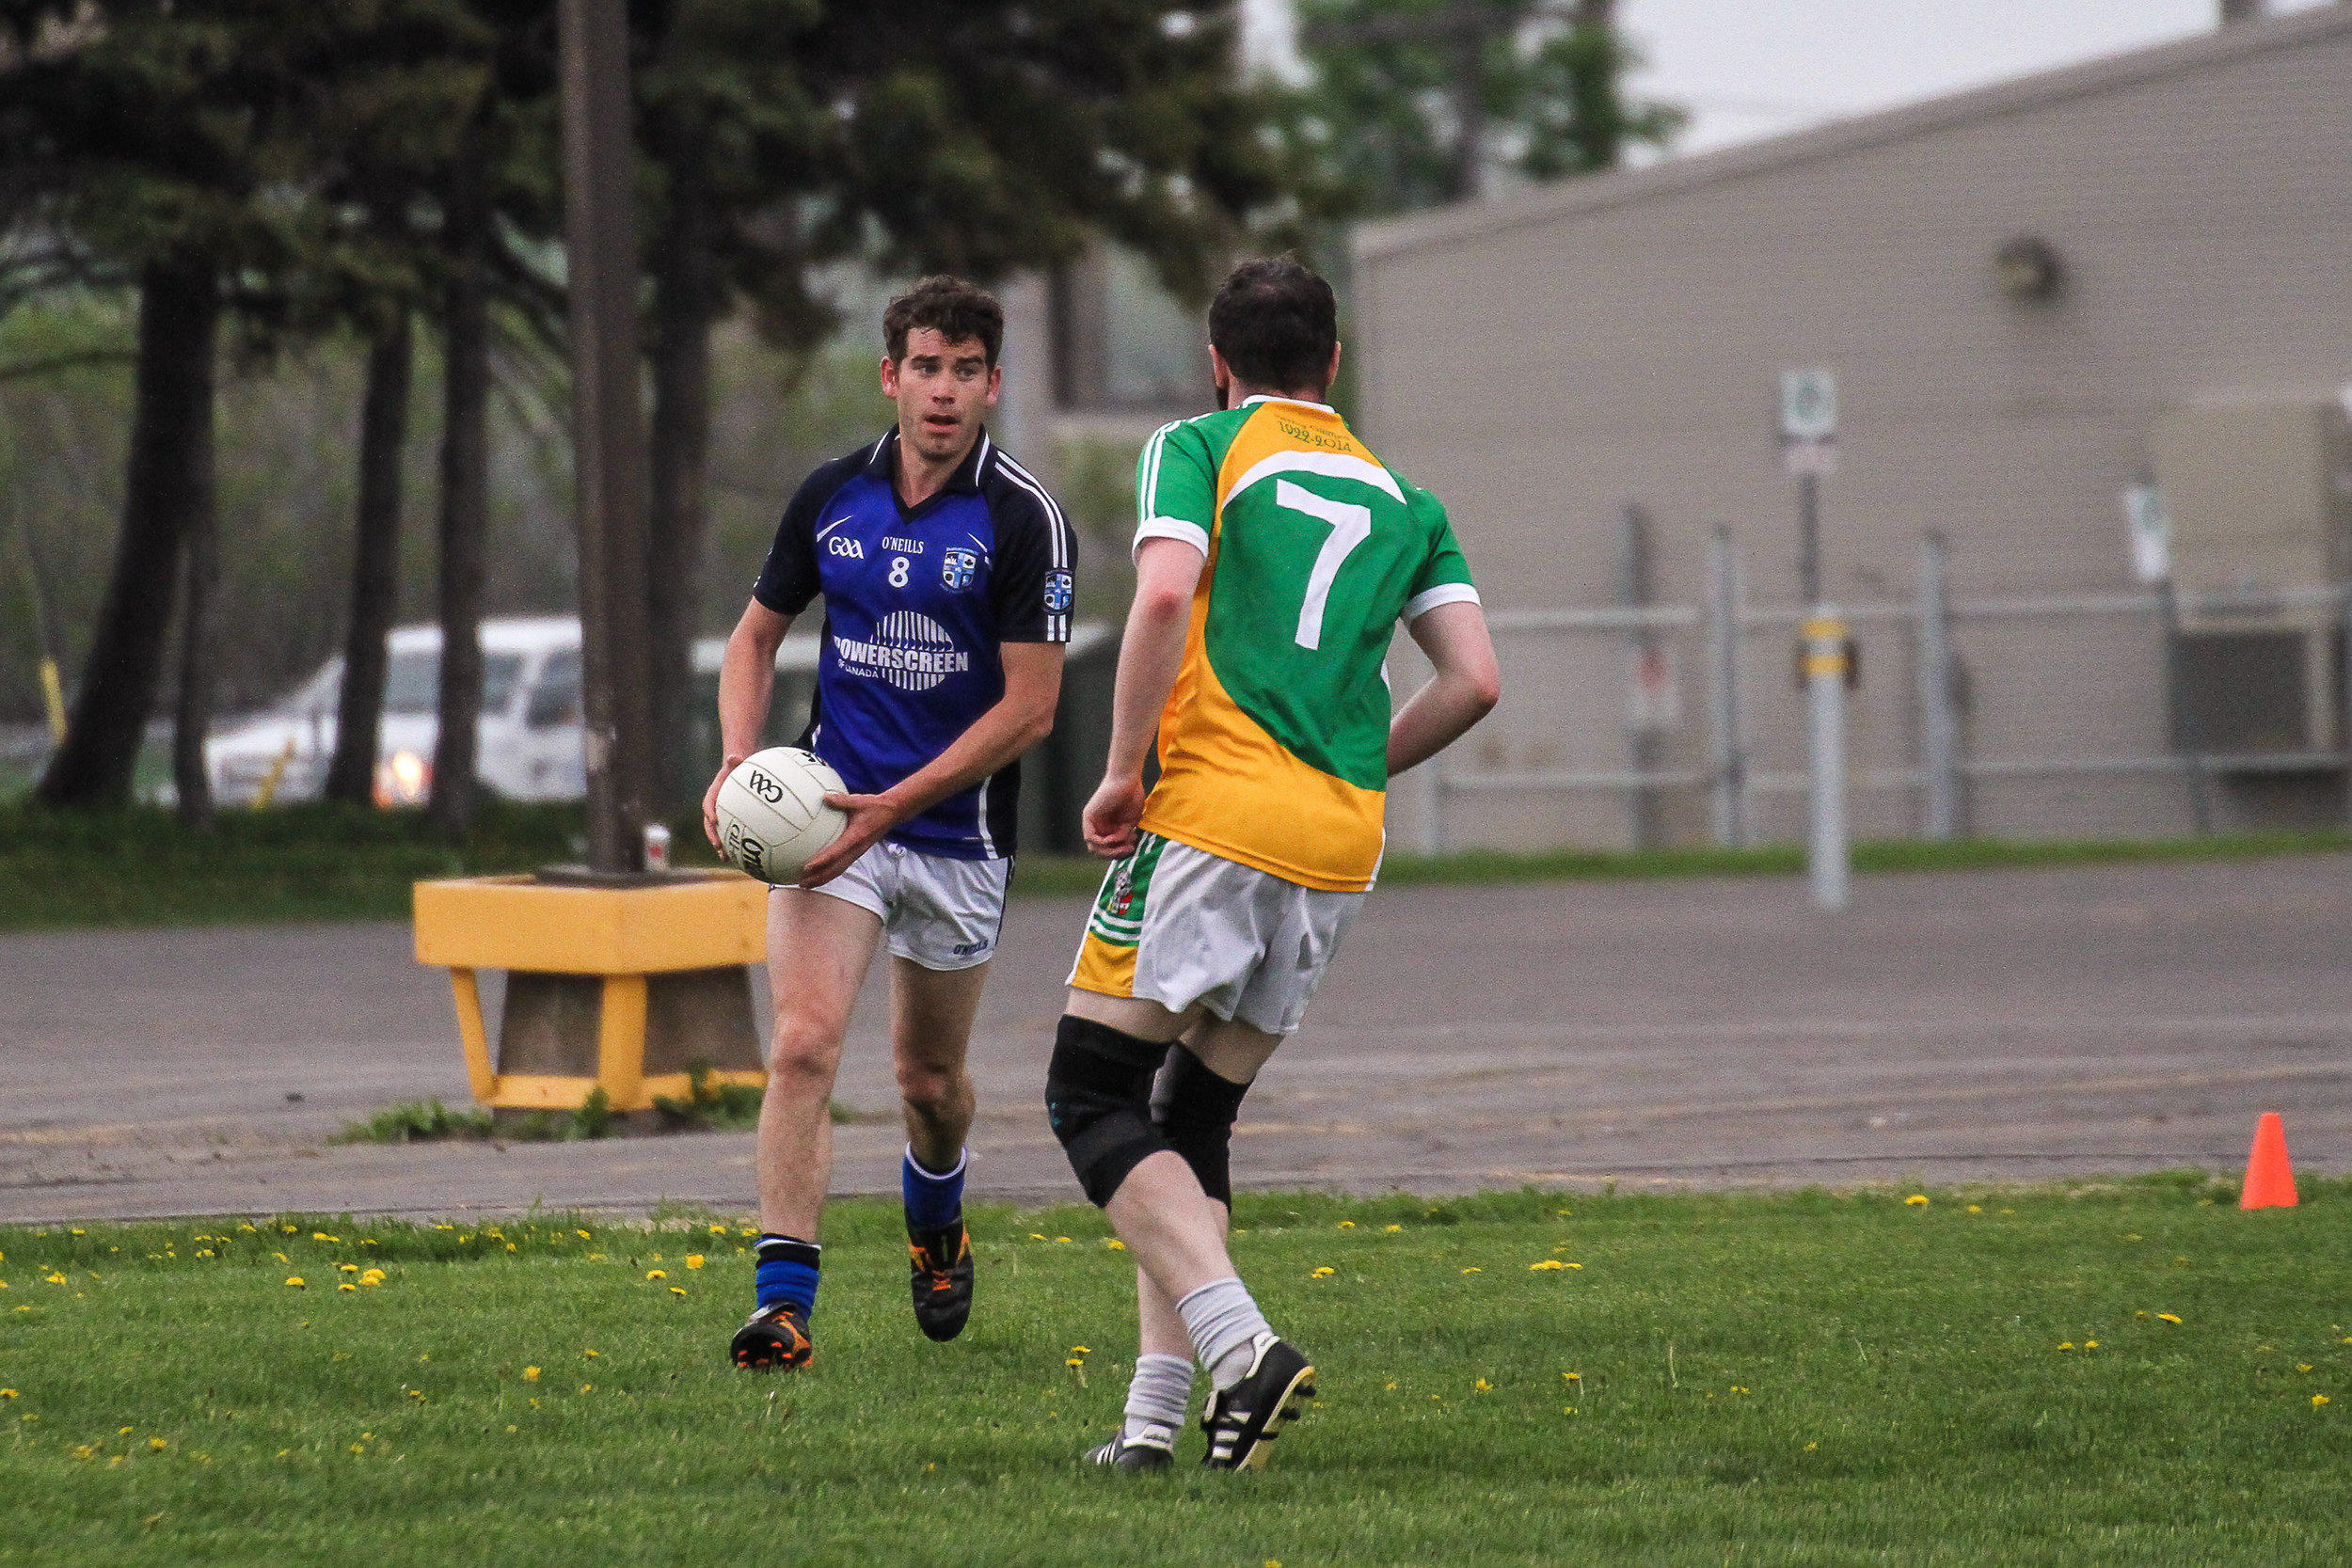 Toronto Gaels Gaelic Football Club - Montreal May Tournament 2015 - Fianals-GaelsvsEmmets(12of22).jpg